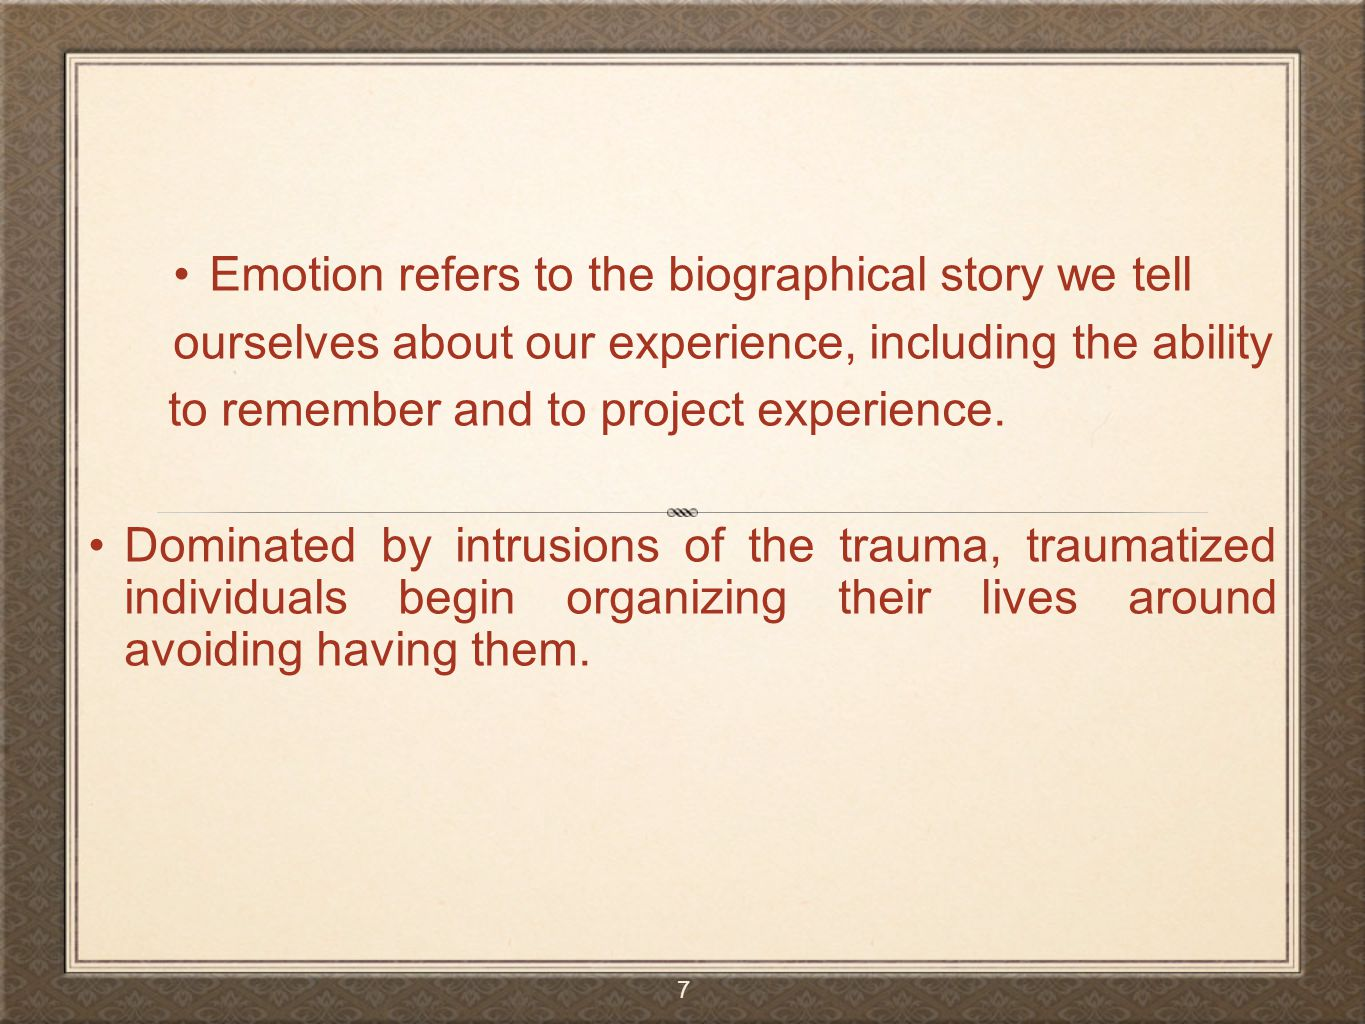 Emotion refers to the biographical story we tell